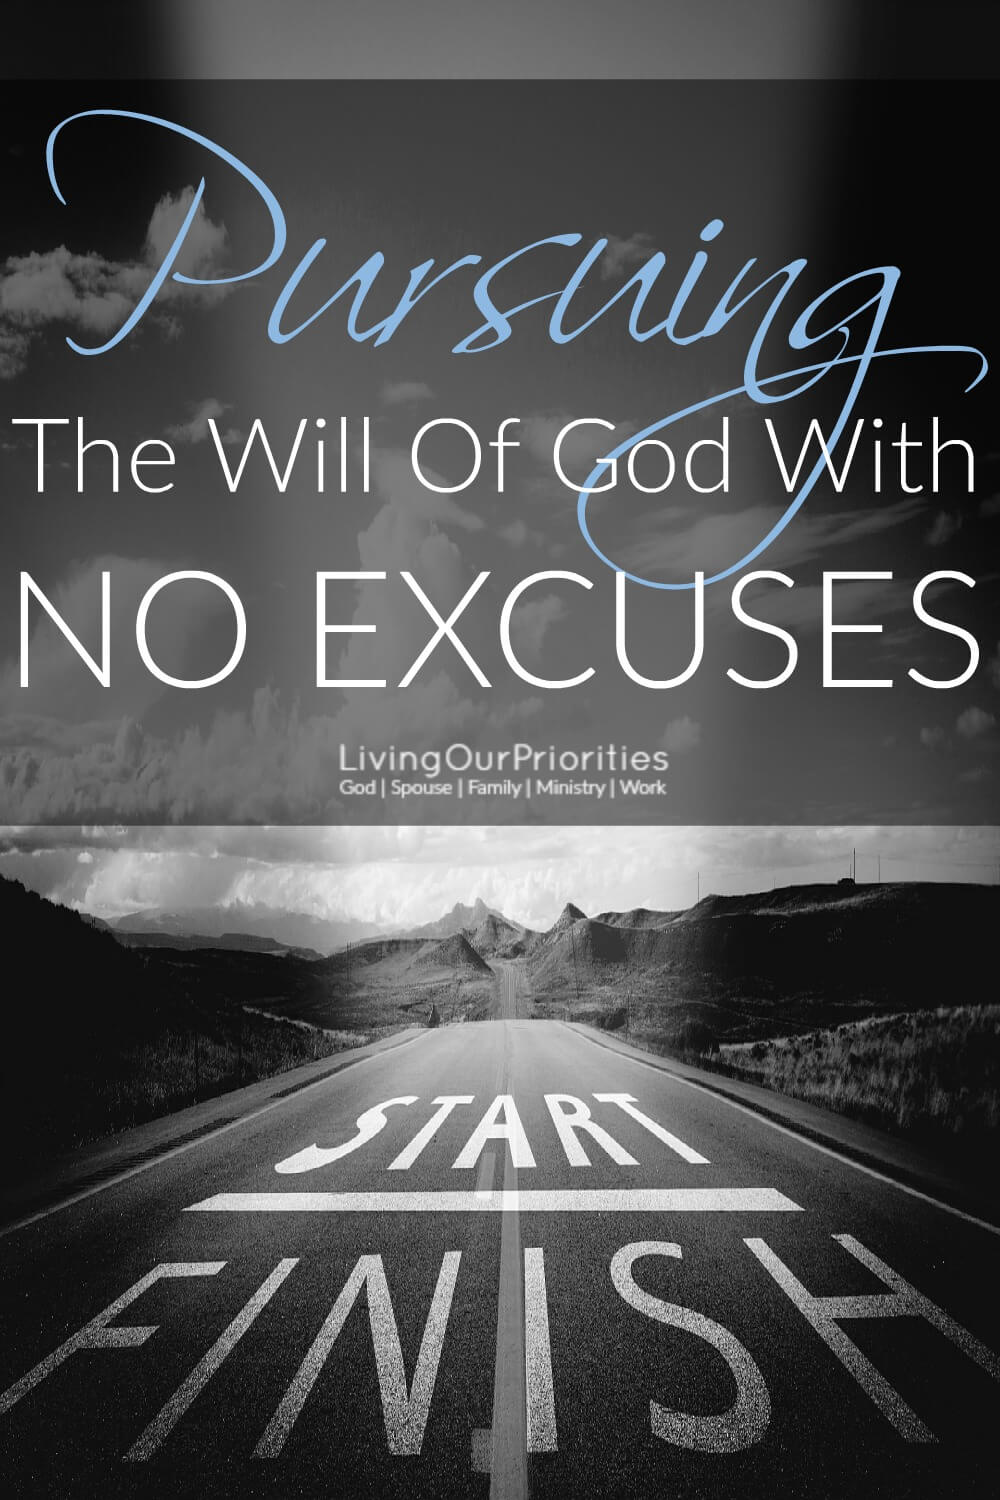 We're all guilty of blaming people, or life-circumstances for why we haven't obeyed the call on our life. Whether we fulfill the purpose God has for us or not, has very little to do with anyone else, or our circumstances. The results all depend on us. If you're ready to pursue God's will in your life with no excuses, then we invite you to read this post. #noexcuses #livingourpriorities